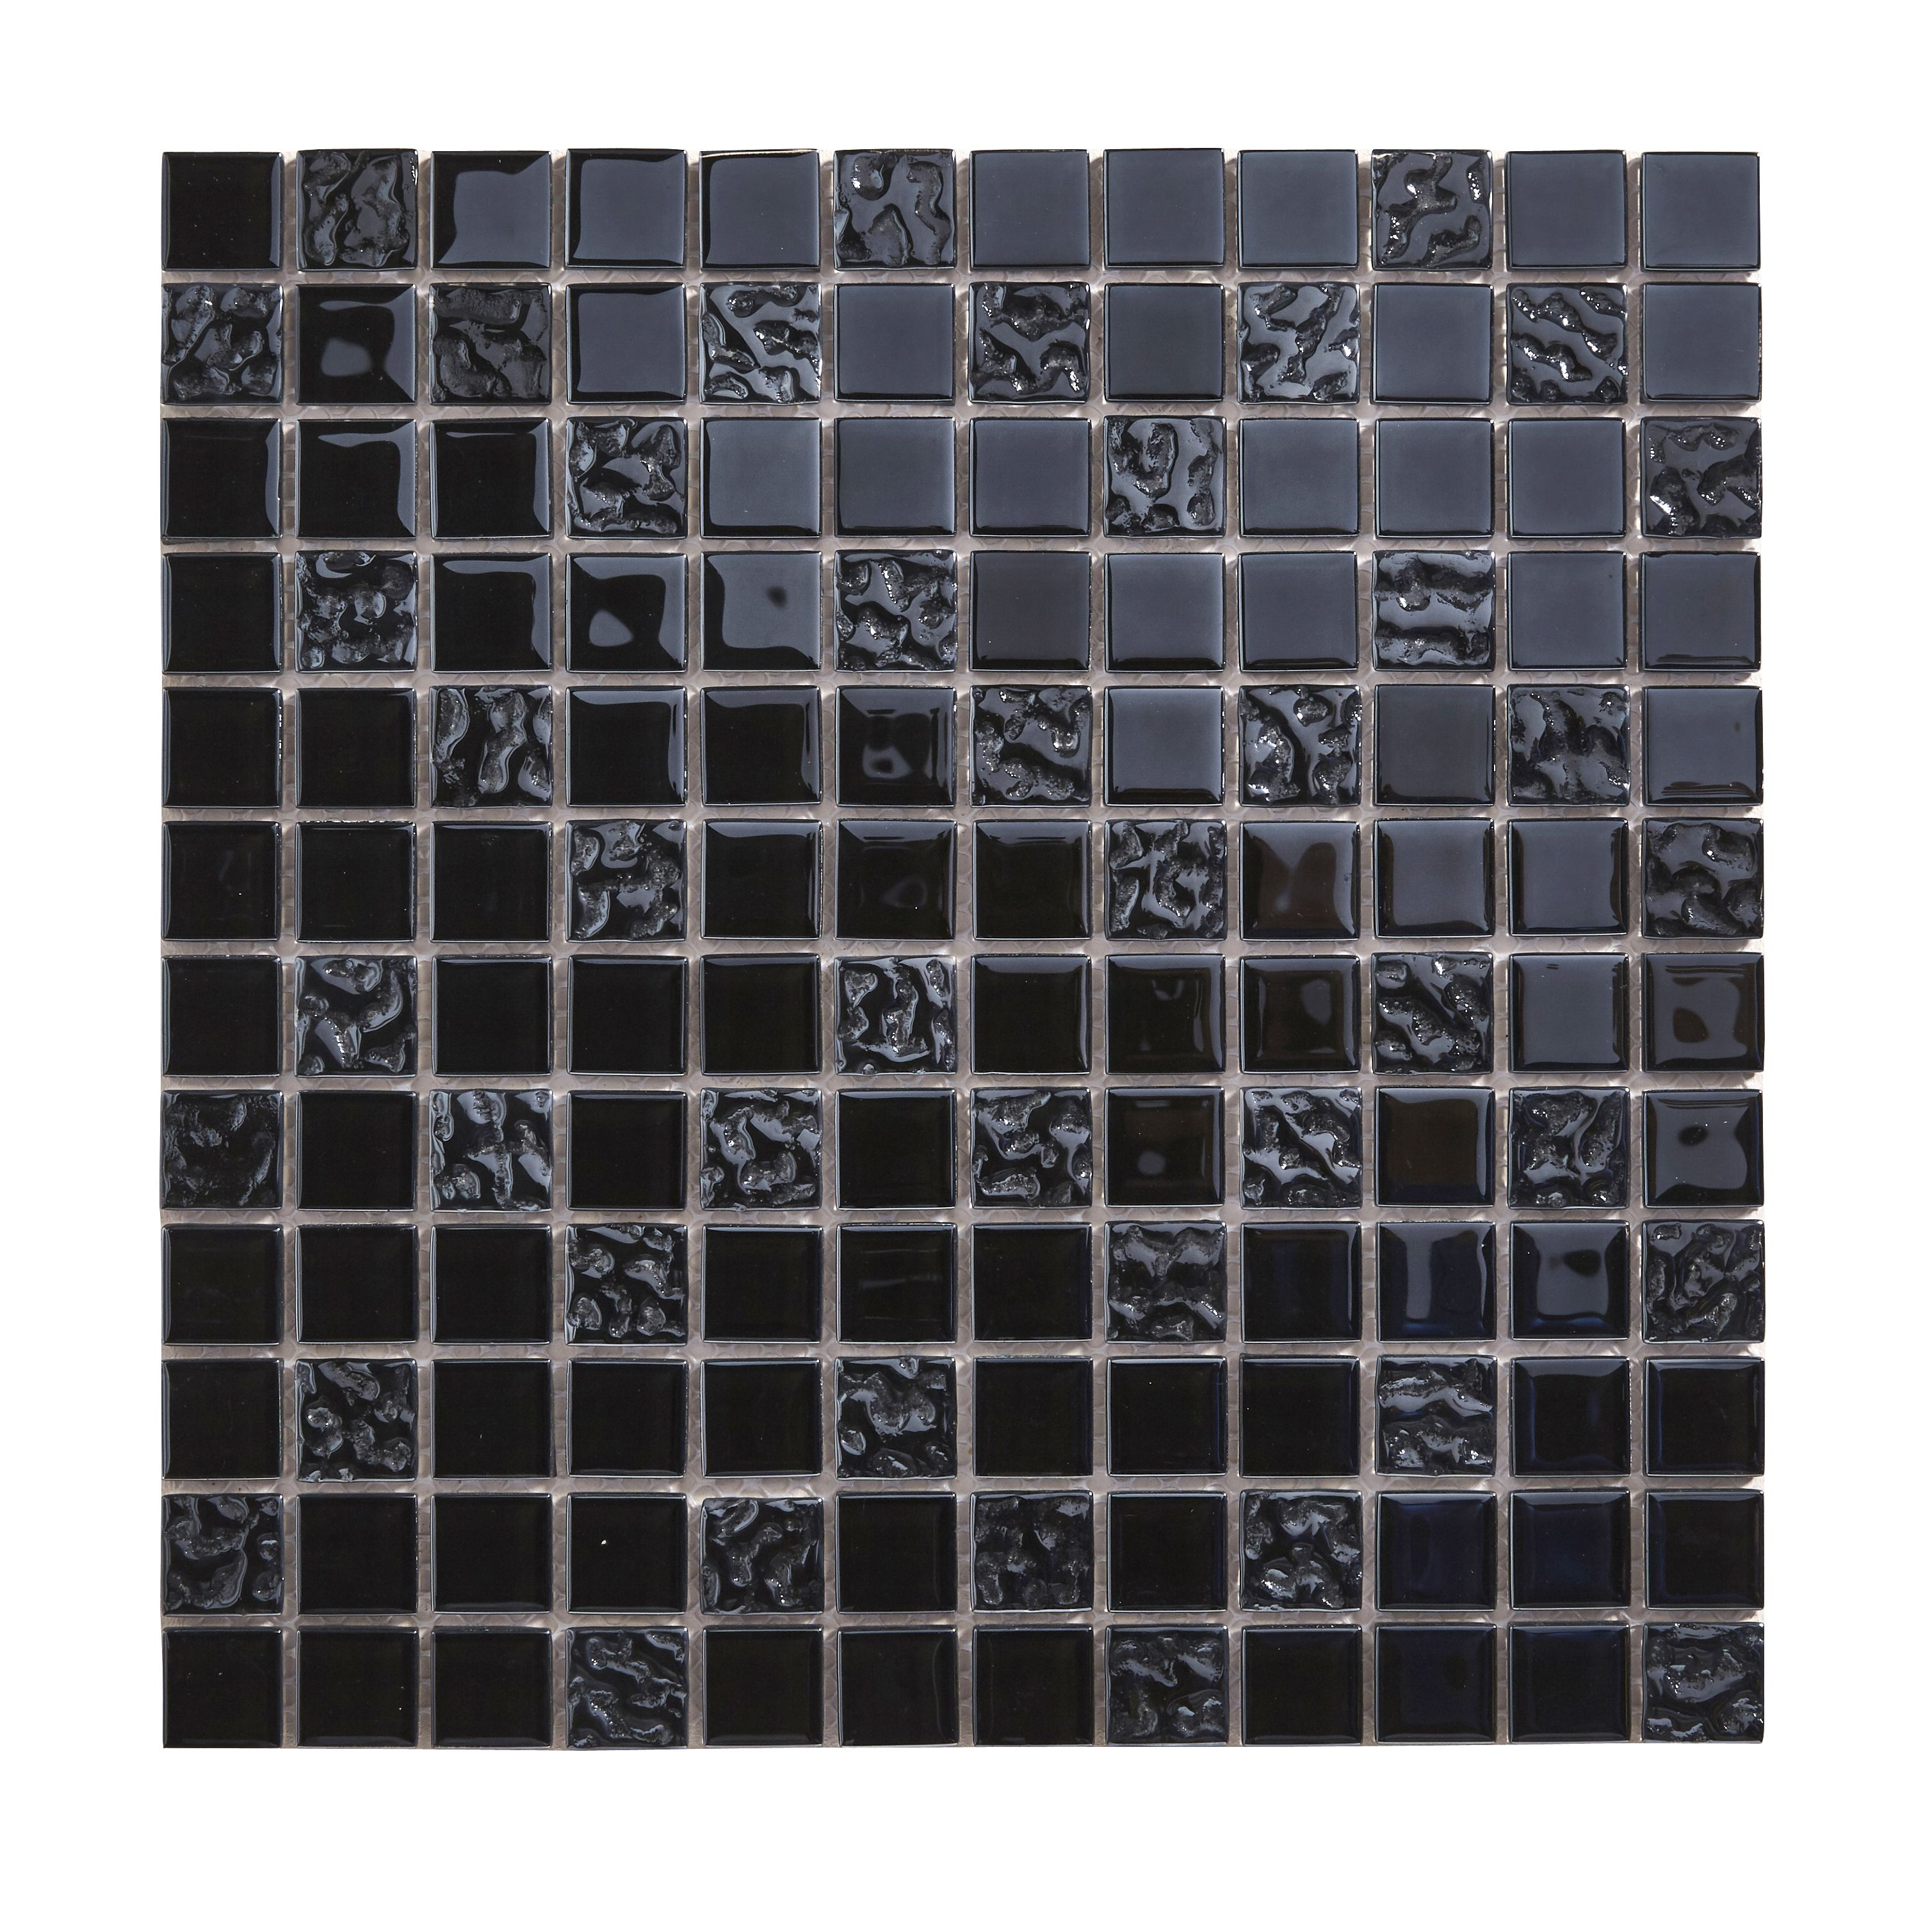 Brown Mosaic Glass Stone Wall Tile L 300mm W 308mm: Flourencia Black Glass Mosaic Tile, (L)300mm (W)300mm